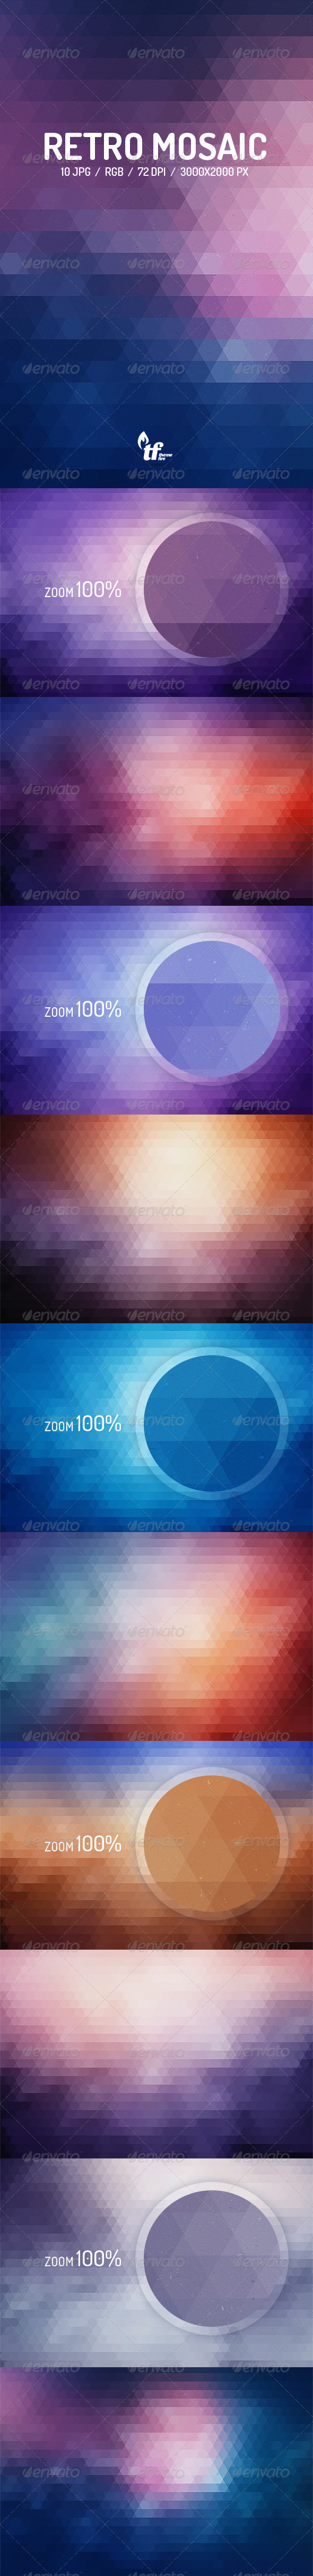 GraphicRiver Retro Mosaic Backgrounds 8748146